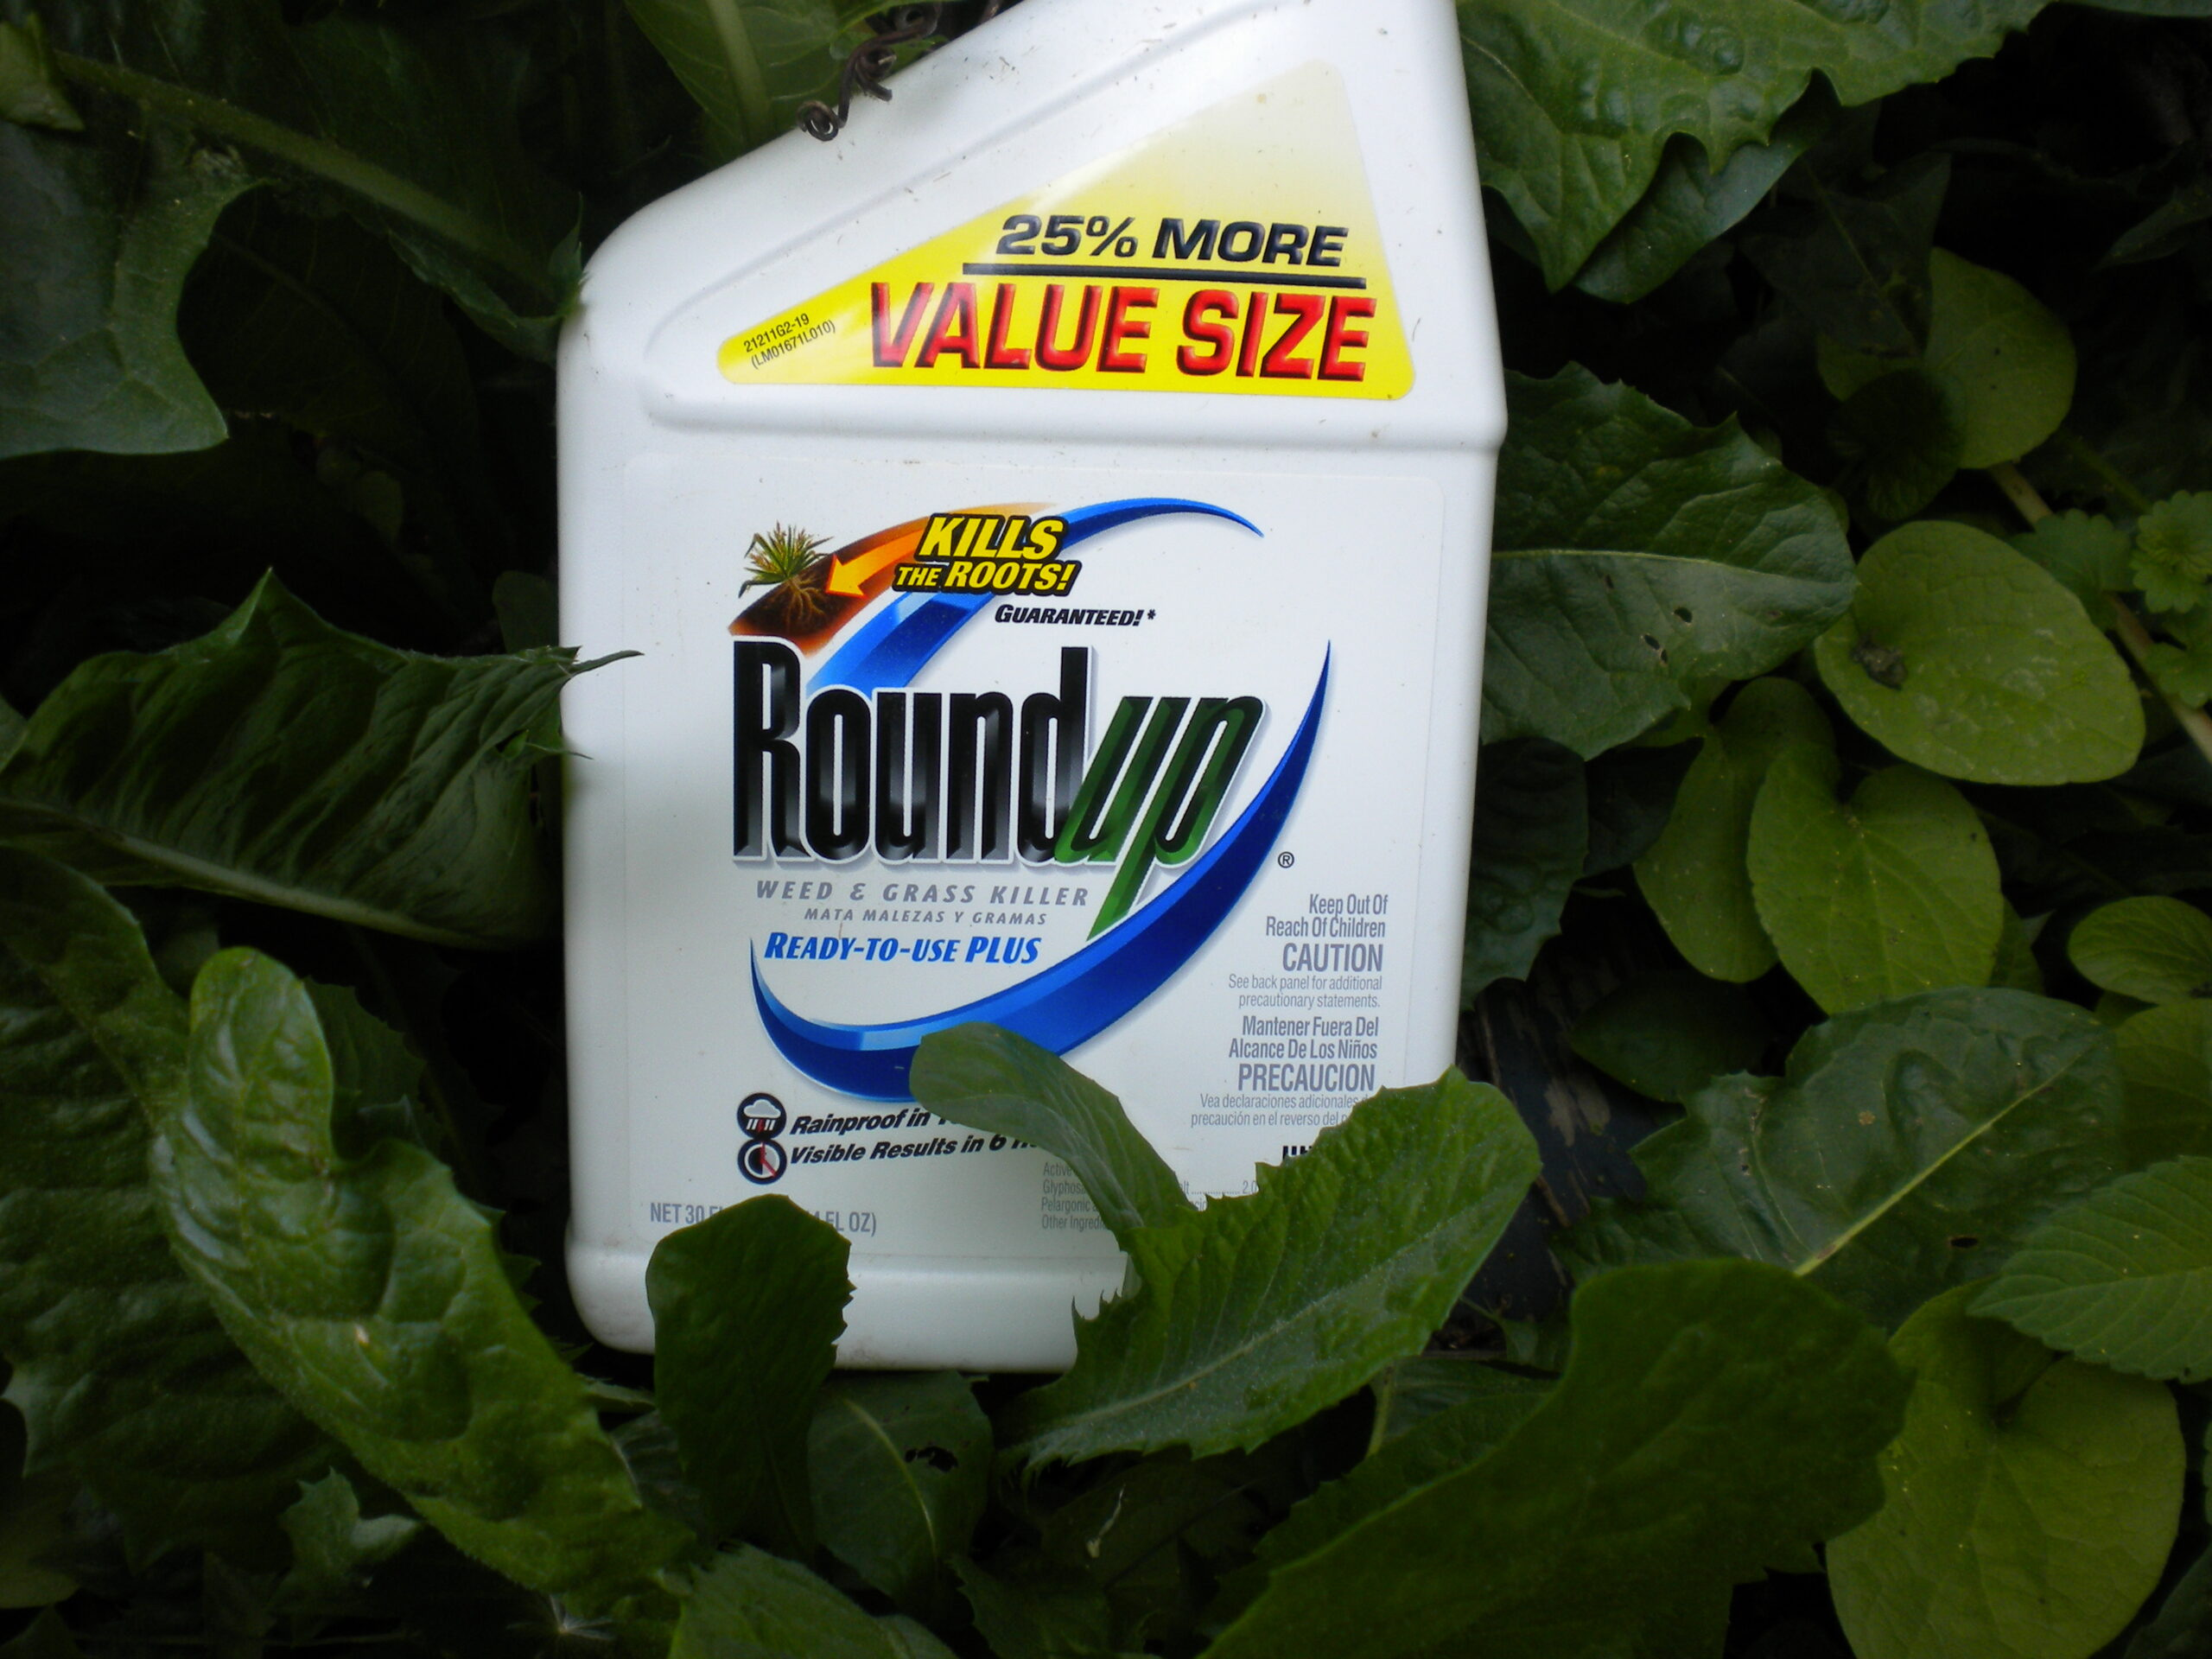 How does glyphosate affect your health?